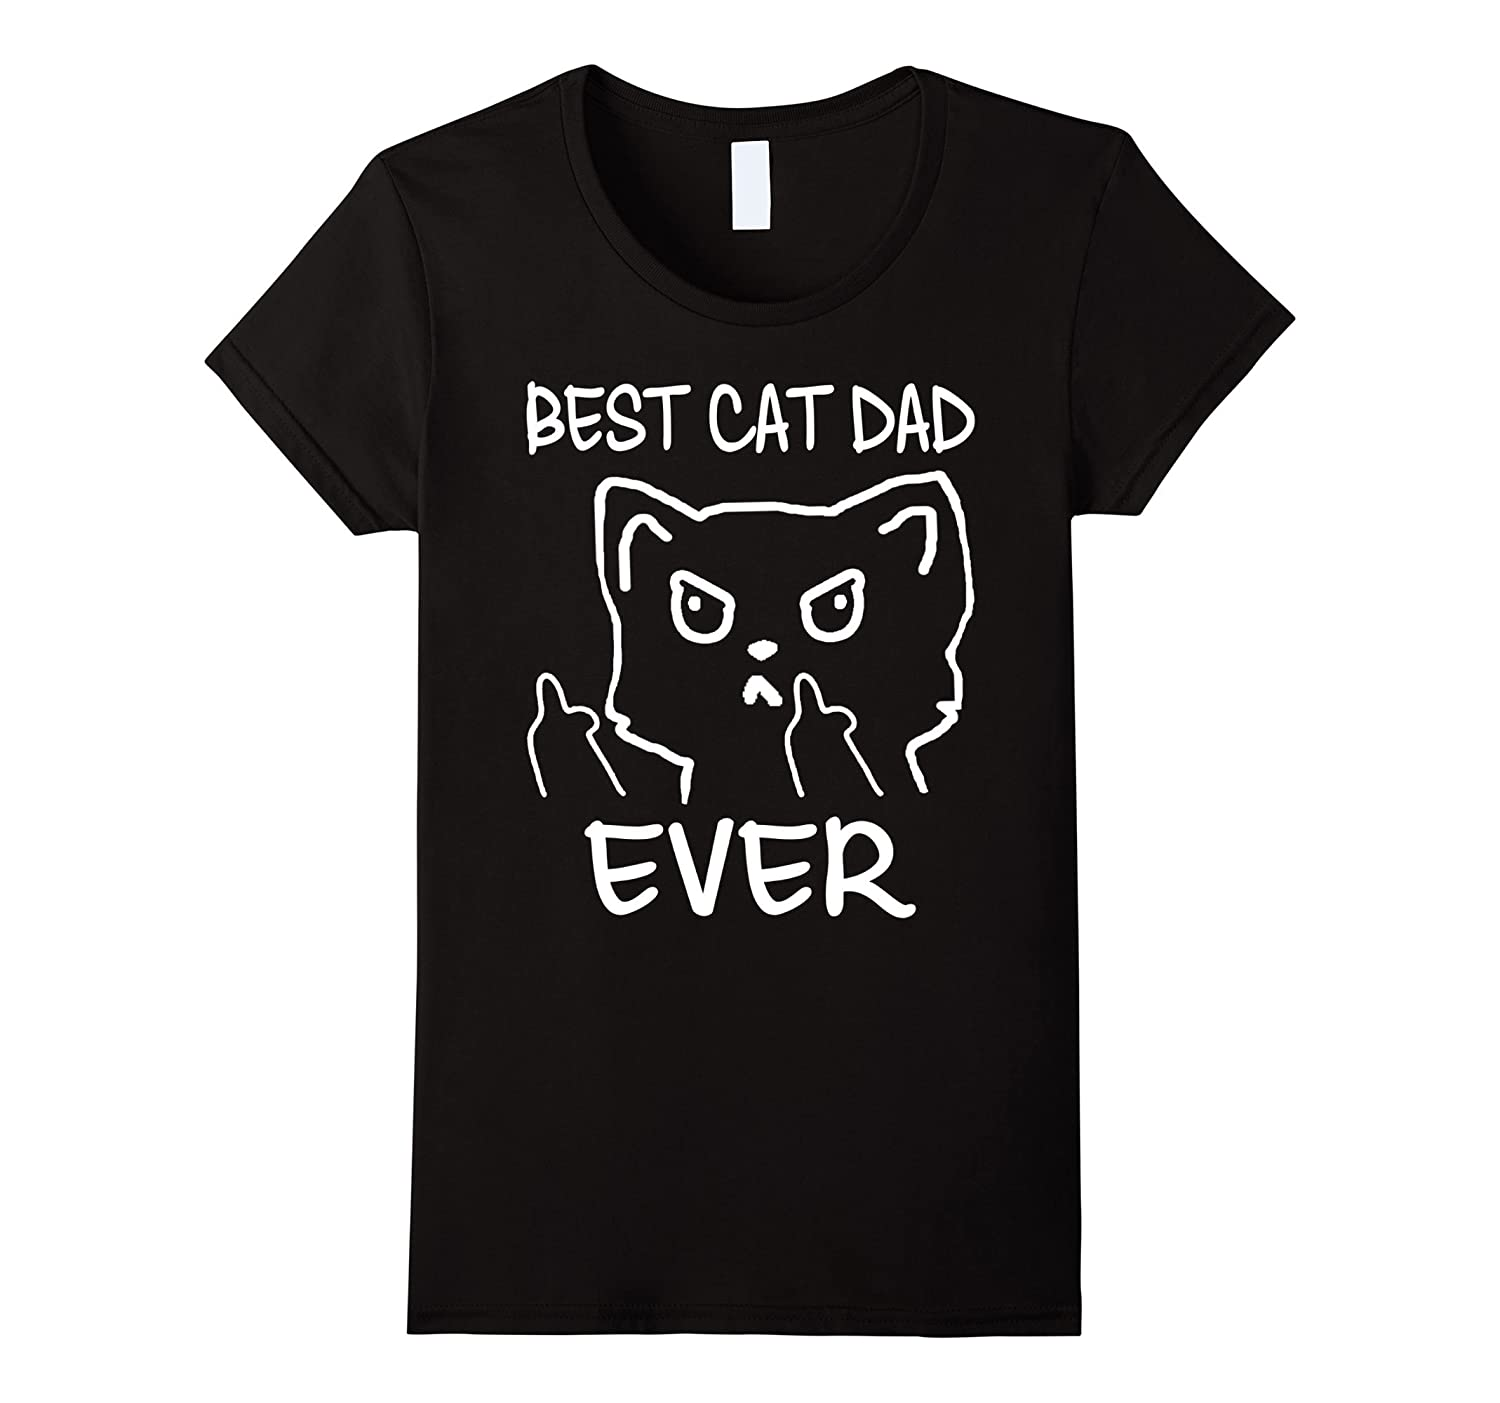 Funny Cat Gifts Best Cat Dad Ever Shirt for fathers day-Yolotee